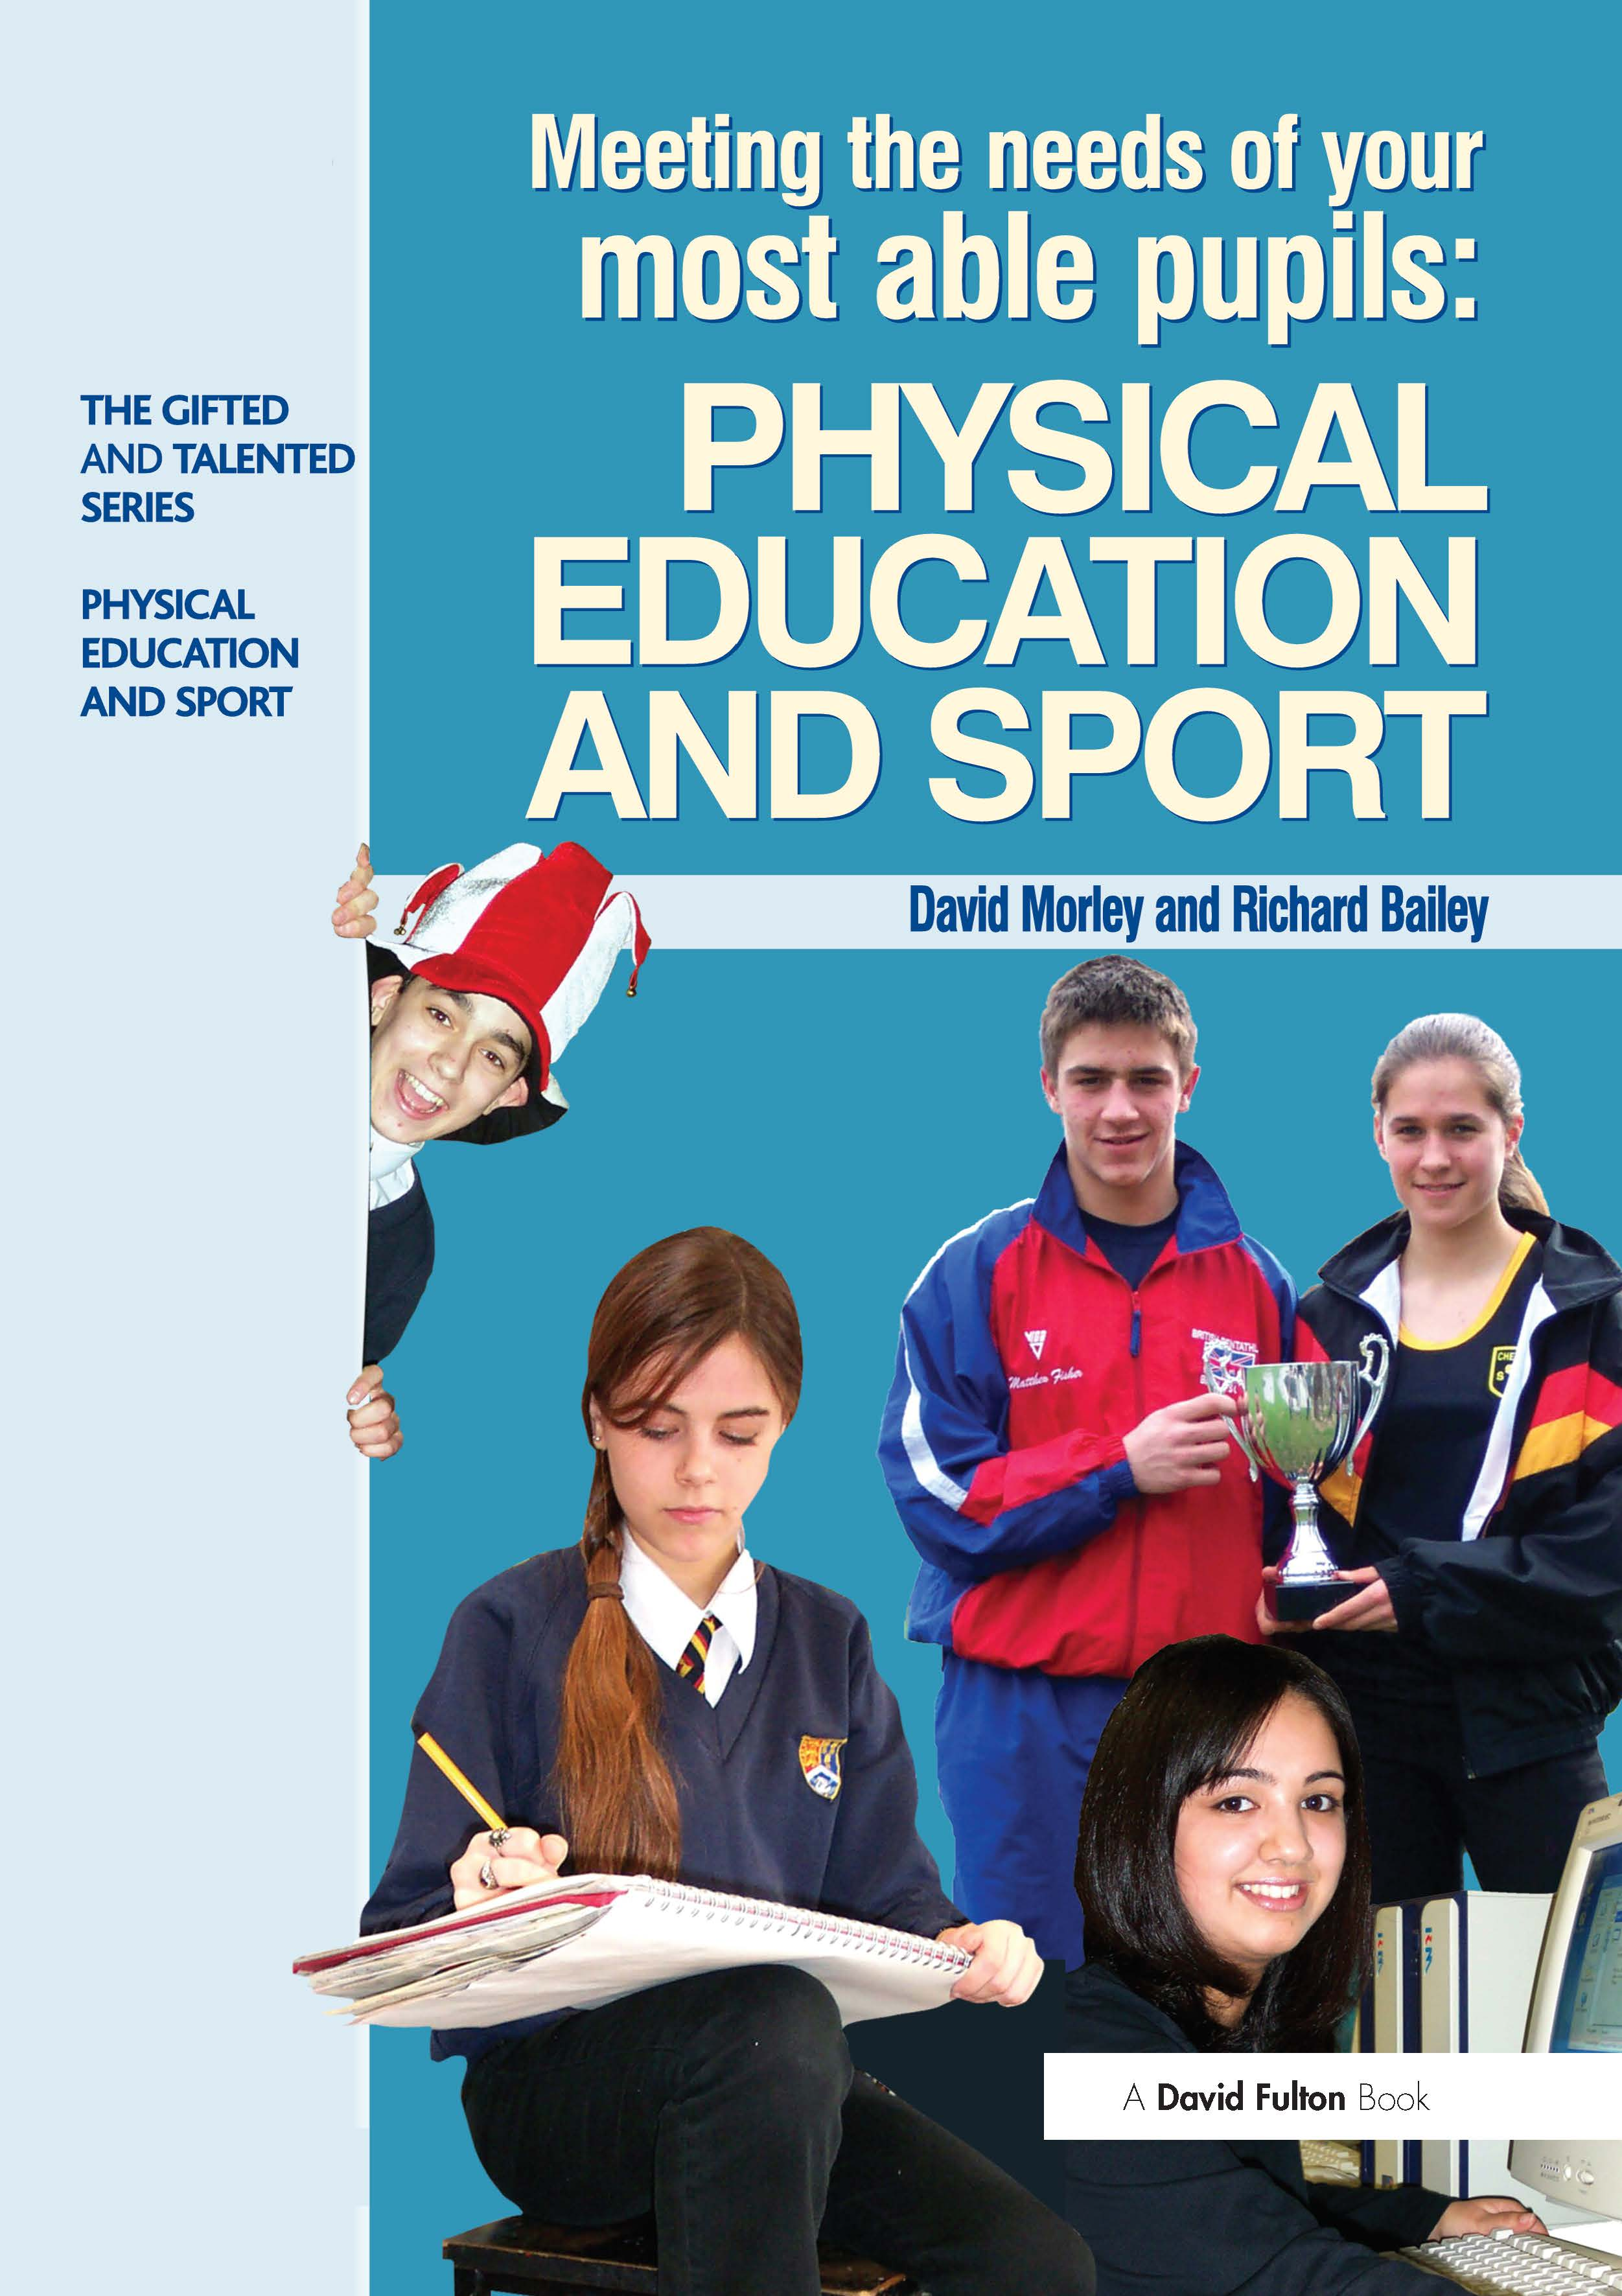 Meeting the Needs of Your Most Able Pupils in Physical Education & Sport book cover